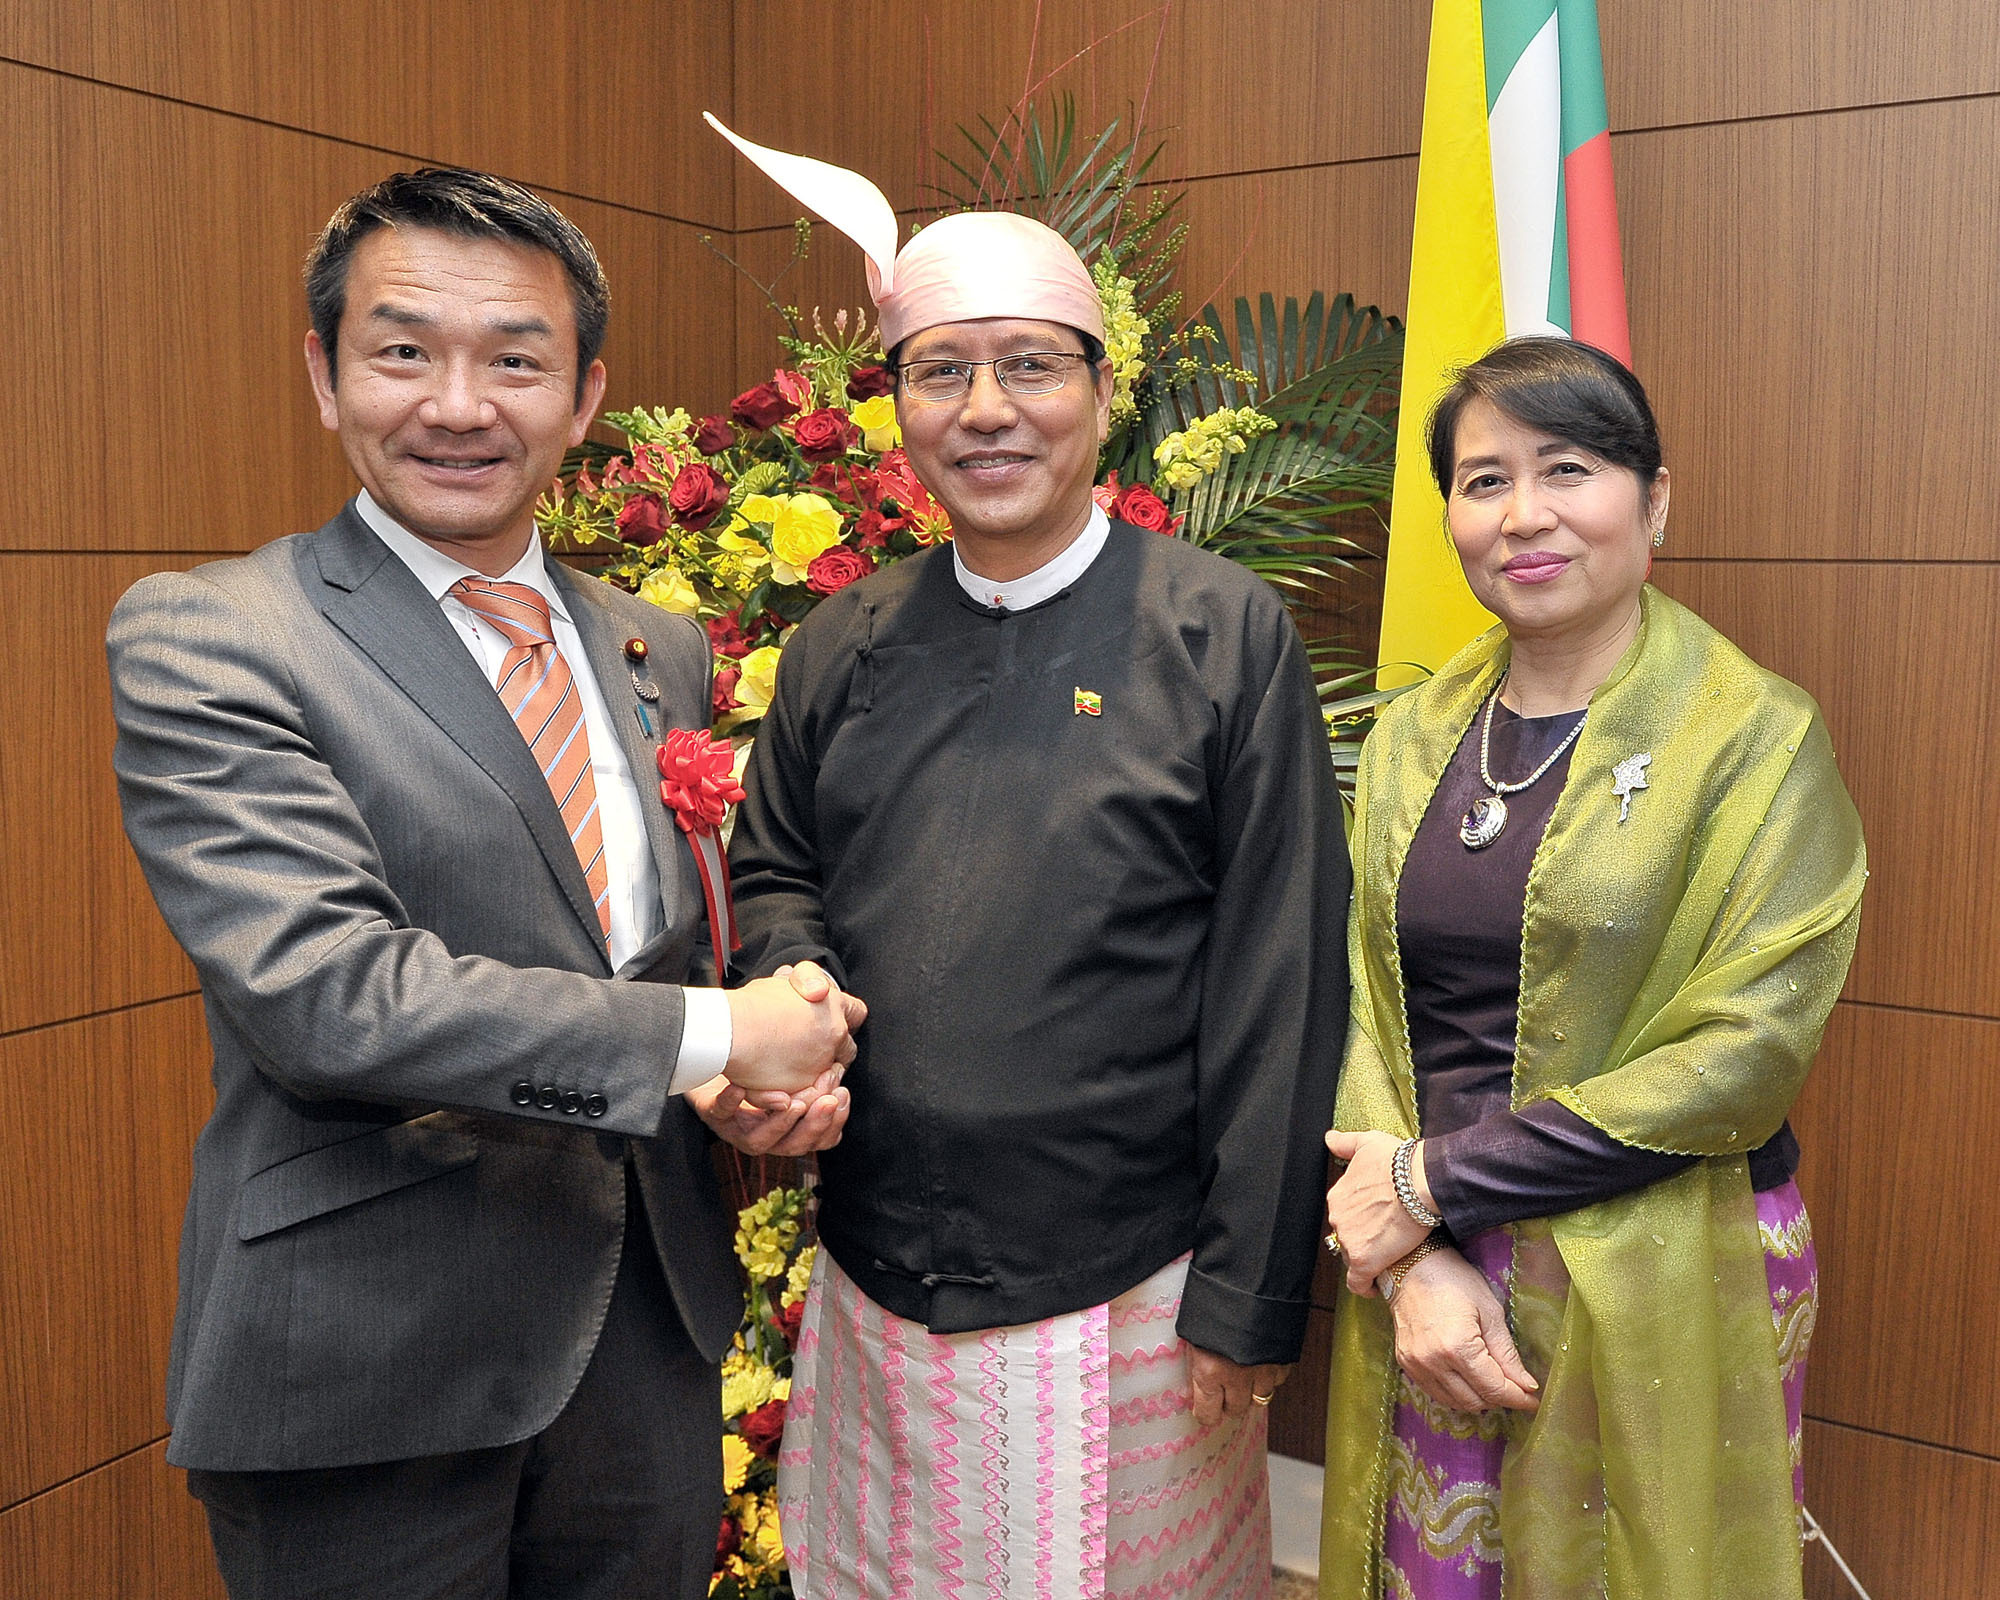 Myanmar's Ambassador Thurain Thant Zin (center) and his wife Khin Soe Naung welcome Parliamentary Vice-Minister for Foreign Affairs Kiyoshi Odawara to a reception celebrating the 69th Independence Day Anniversary of the Republic of the Union of Myanmar at the embassy on Jan. 30. |  YOSHIAKI MIURA